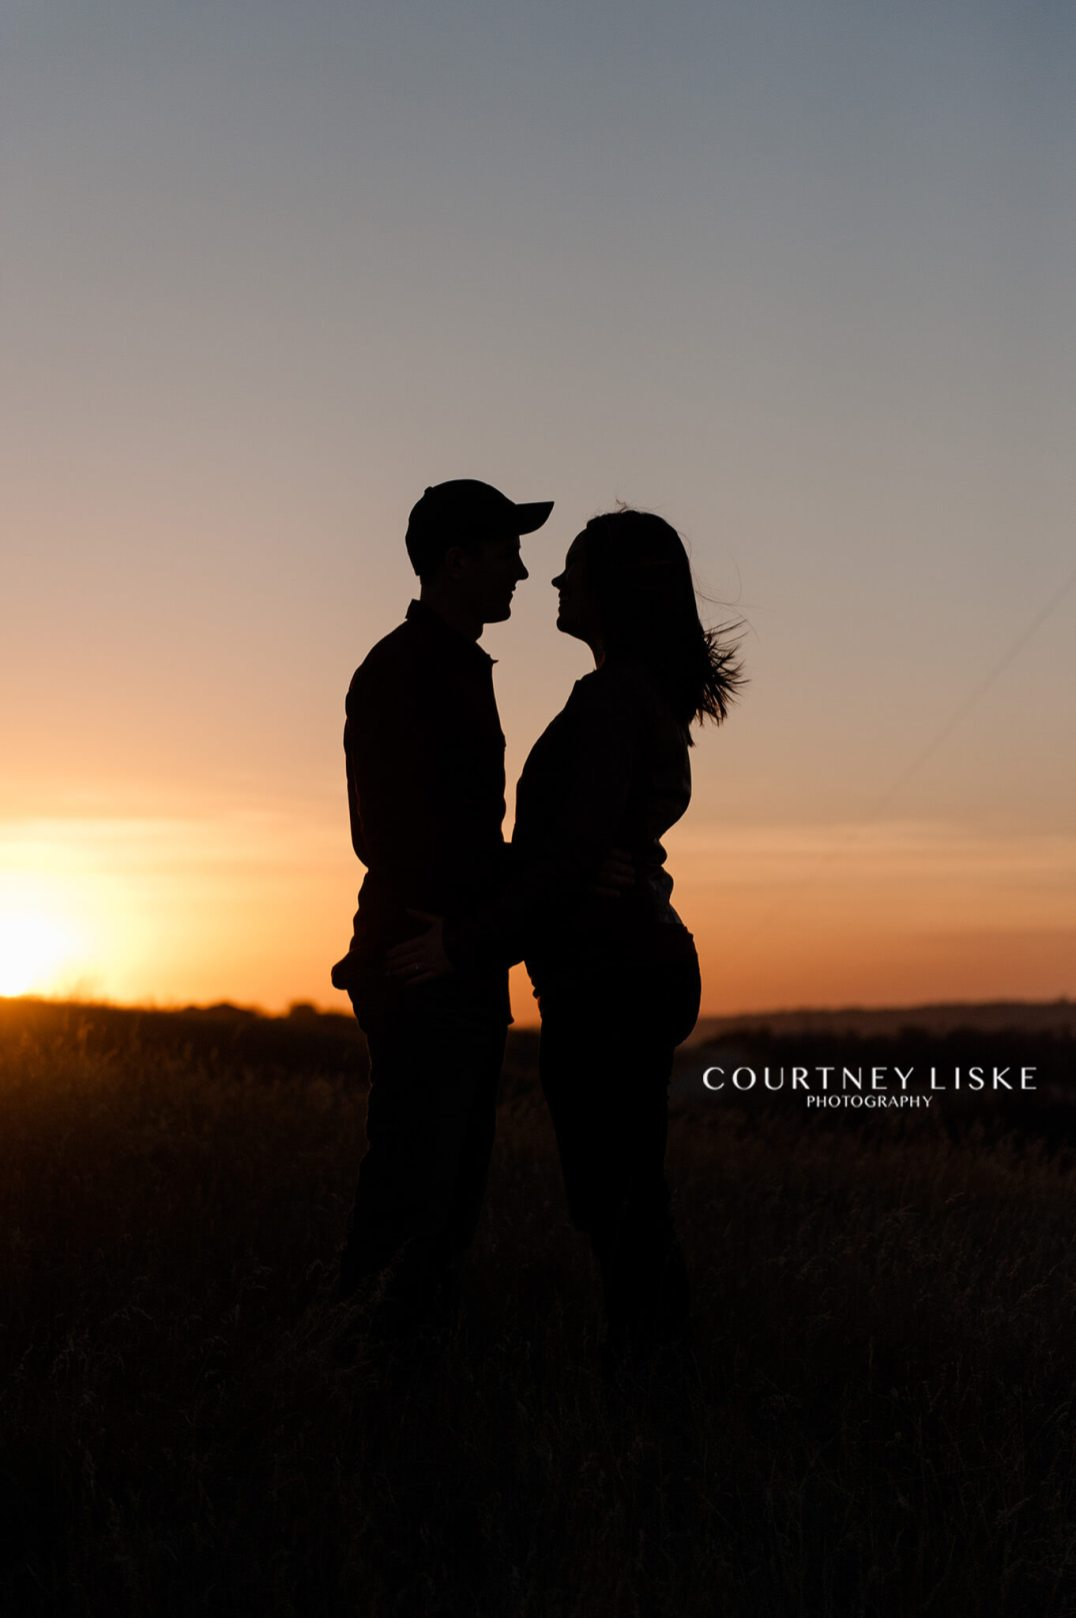 Man and woman standing in field at sunset